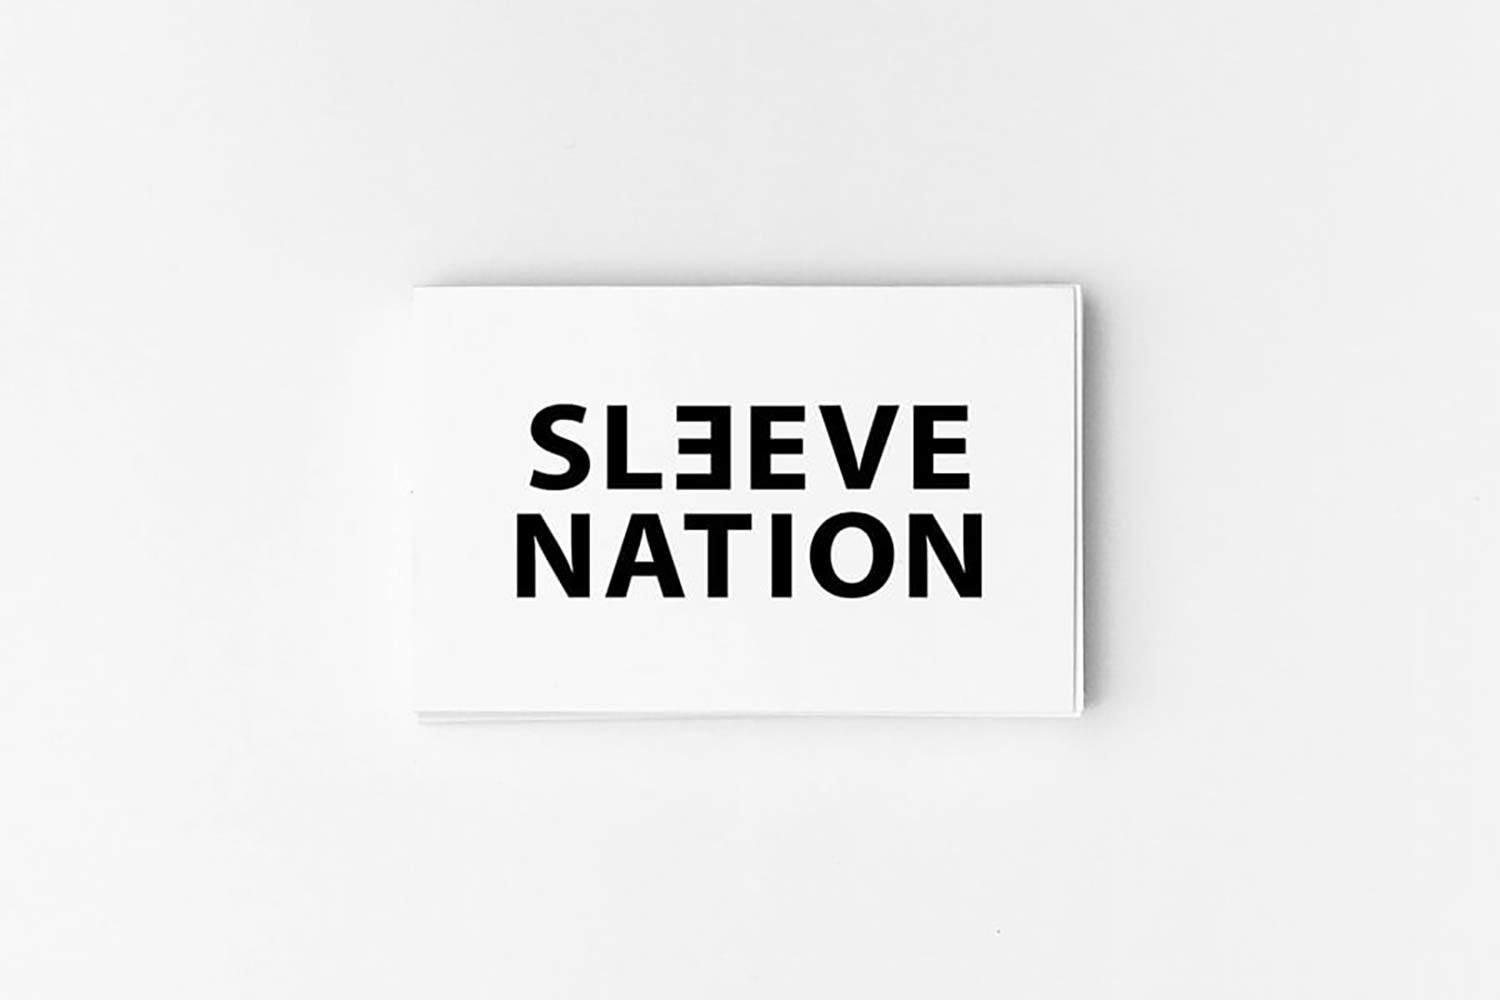 Sleeve Nation by Stina Daag